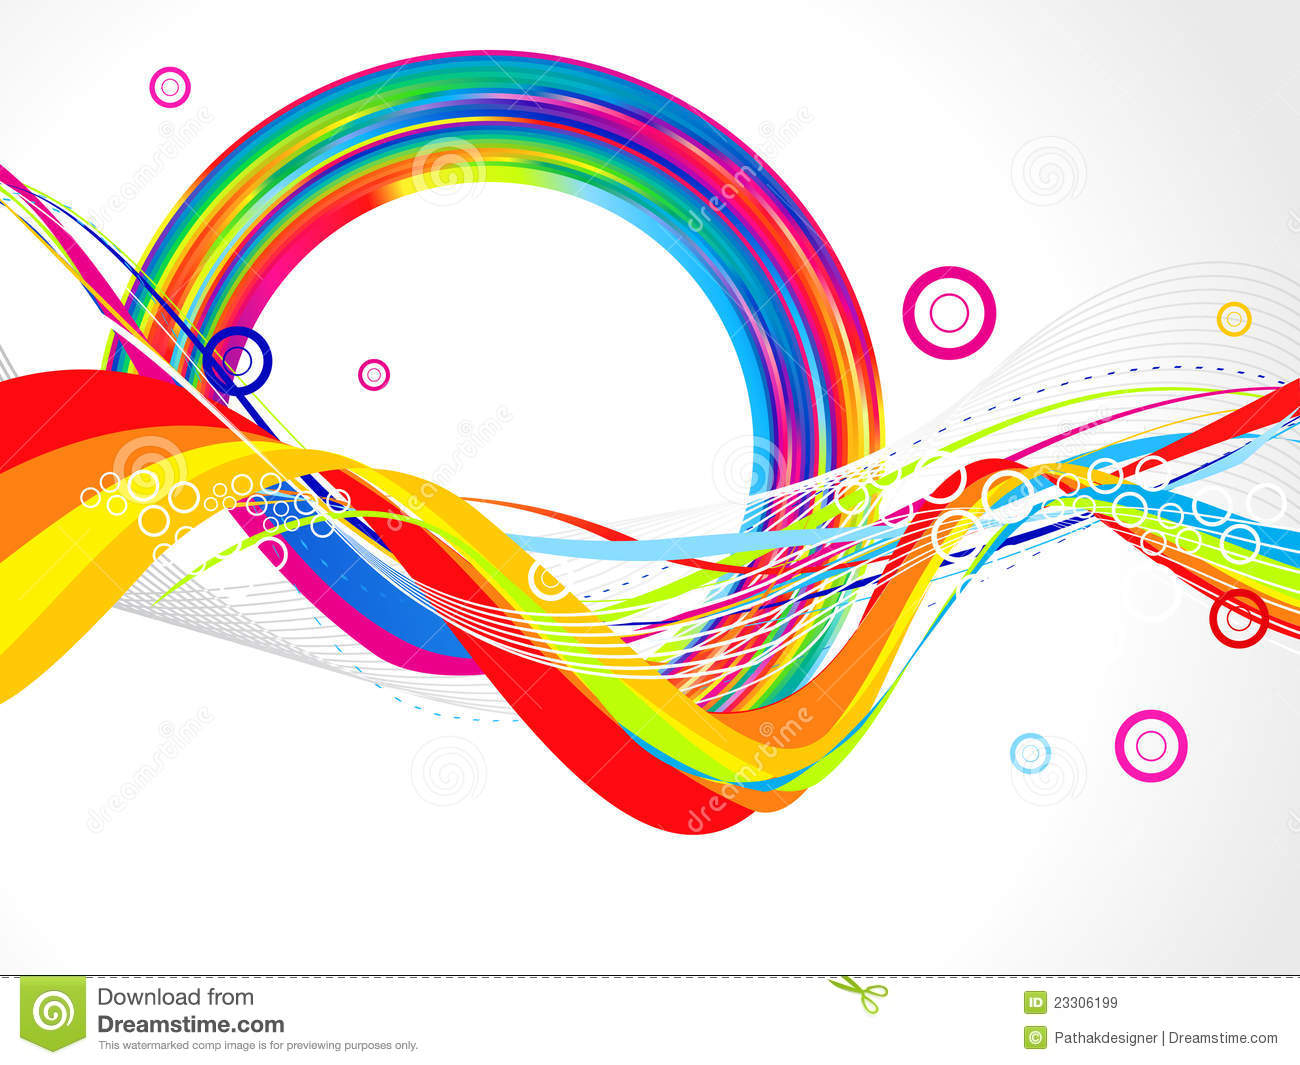 Abstract Volleyball On Colorful Wave Background: Abstract Colorful Wave Background Royalty Free Stock